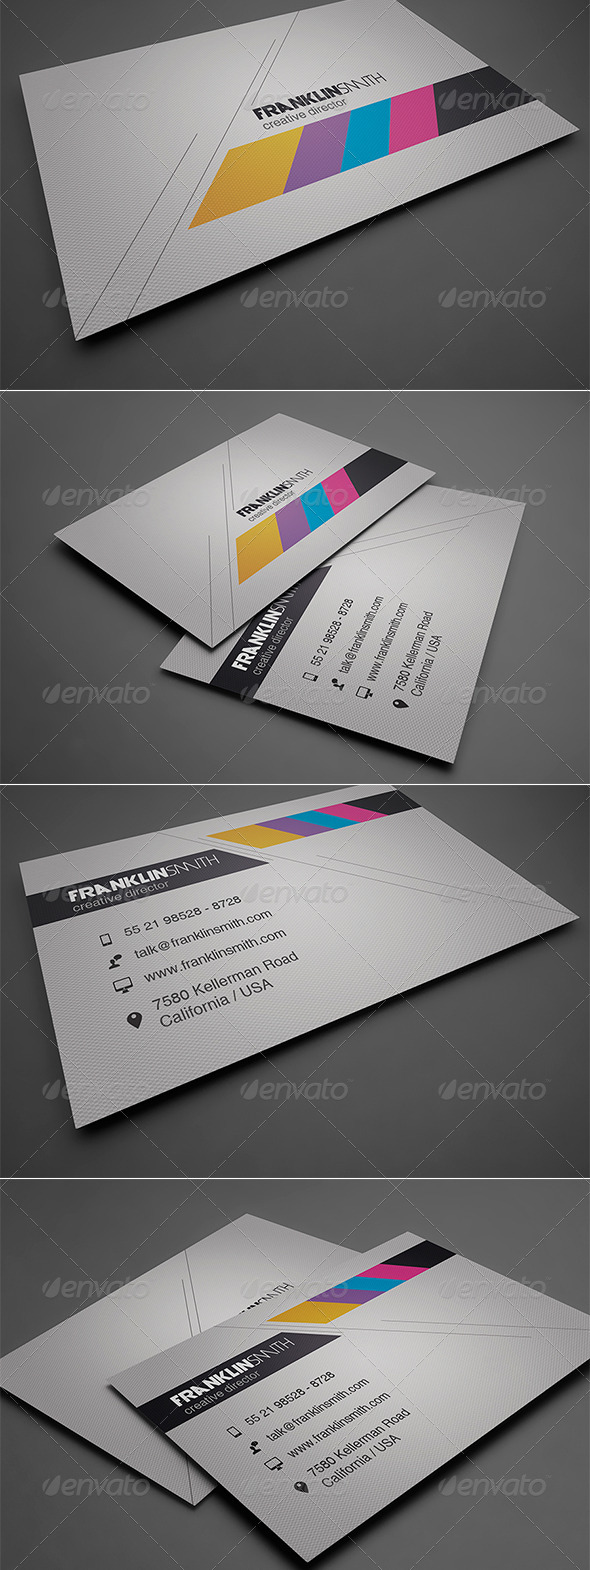 GraphicRiver Creative Business Card 8534575